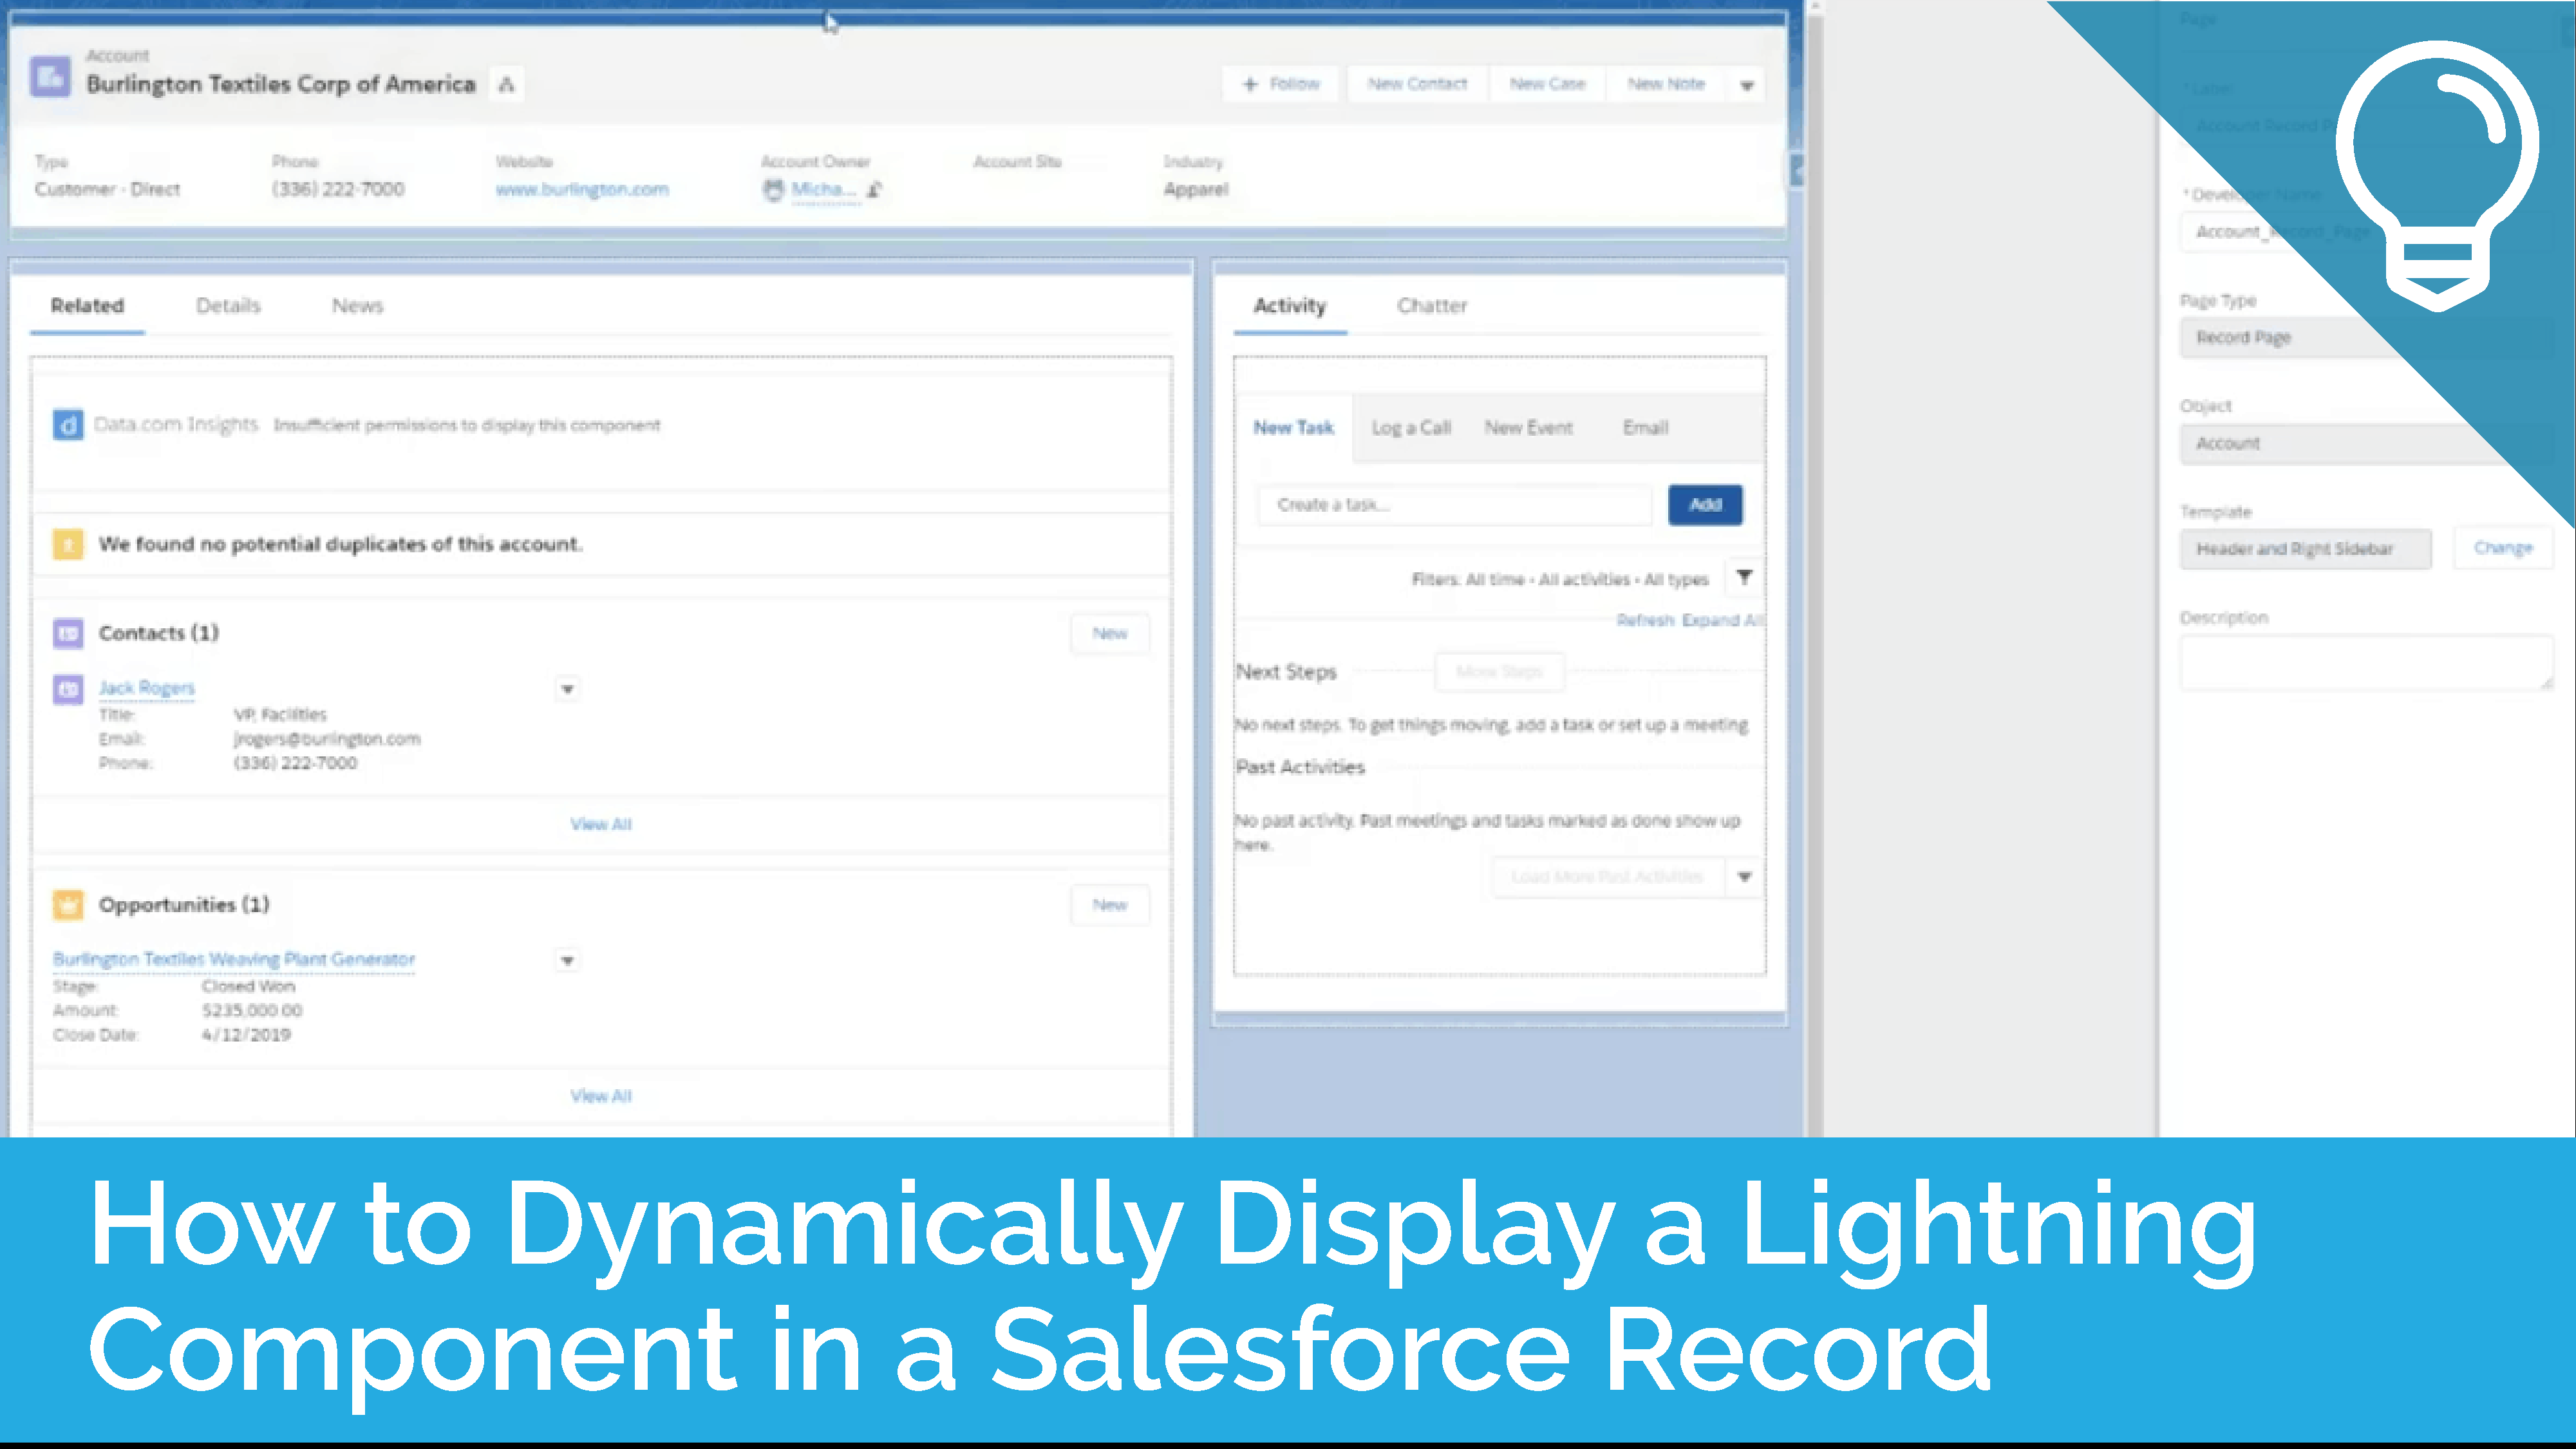 How to Dynamically Display a Lightning Component in a Salesforce Record